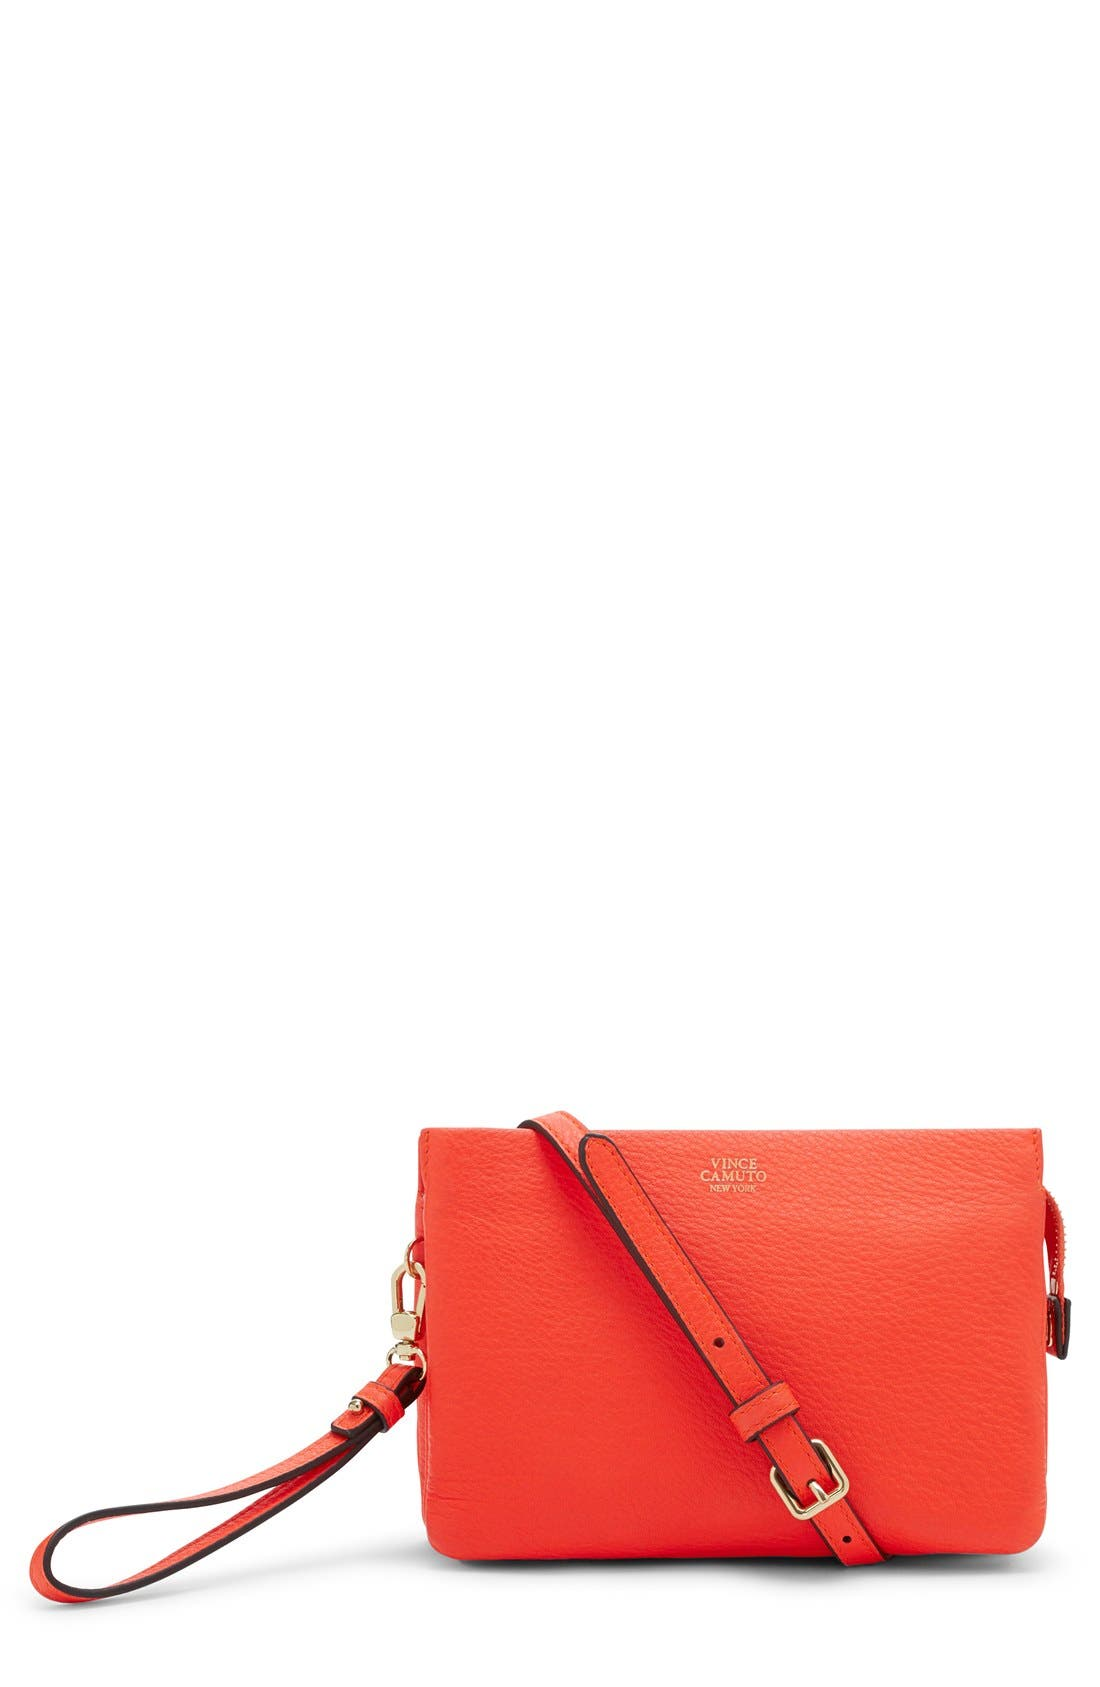 'Cami' Leather Crossbody Bag,                             Main thumbnail 32, color,